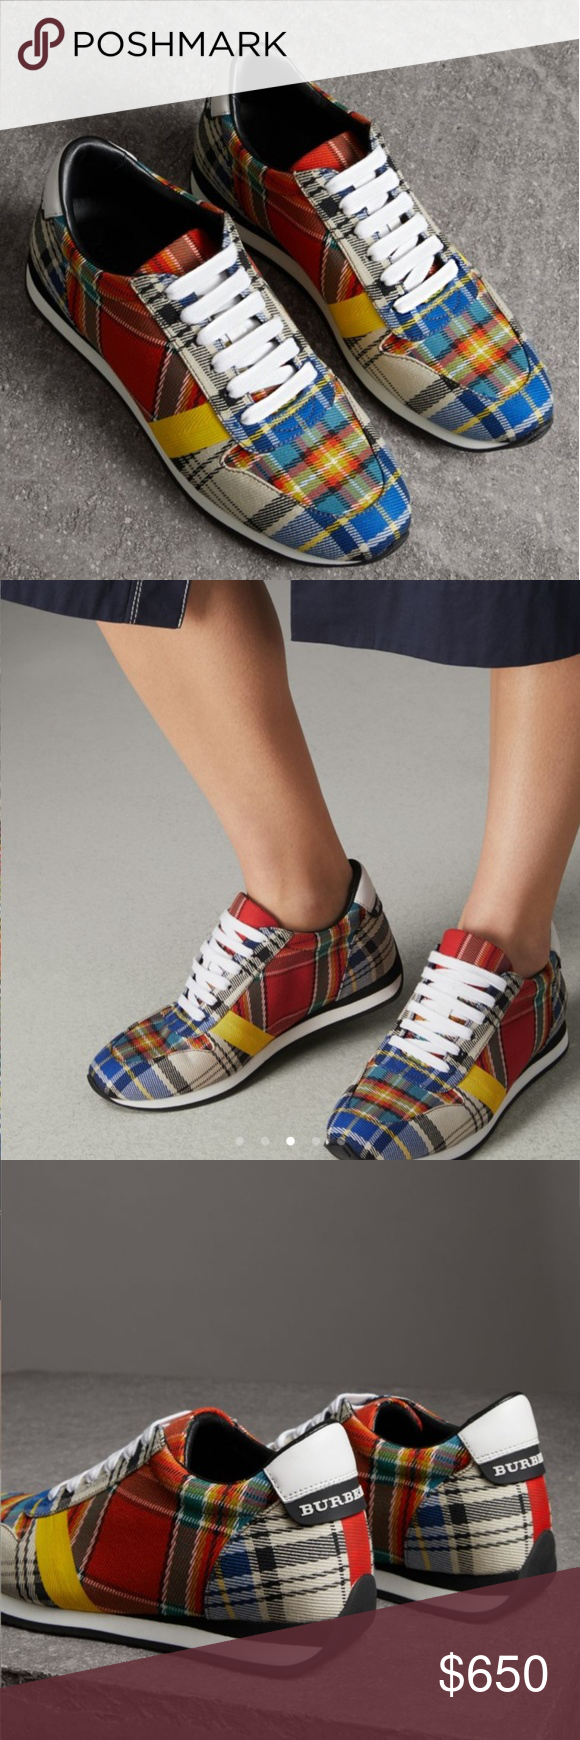 Colorful sneakers, Burberry shoes